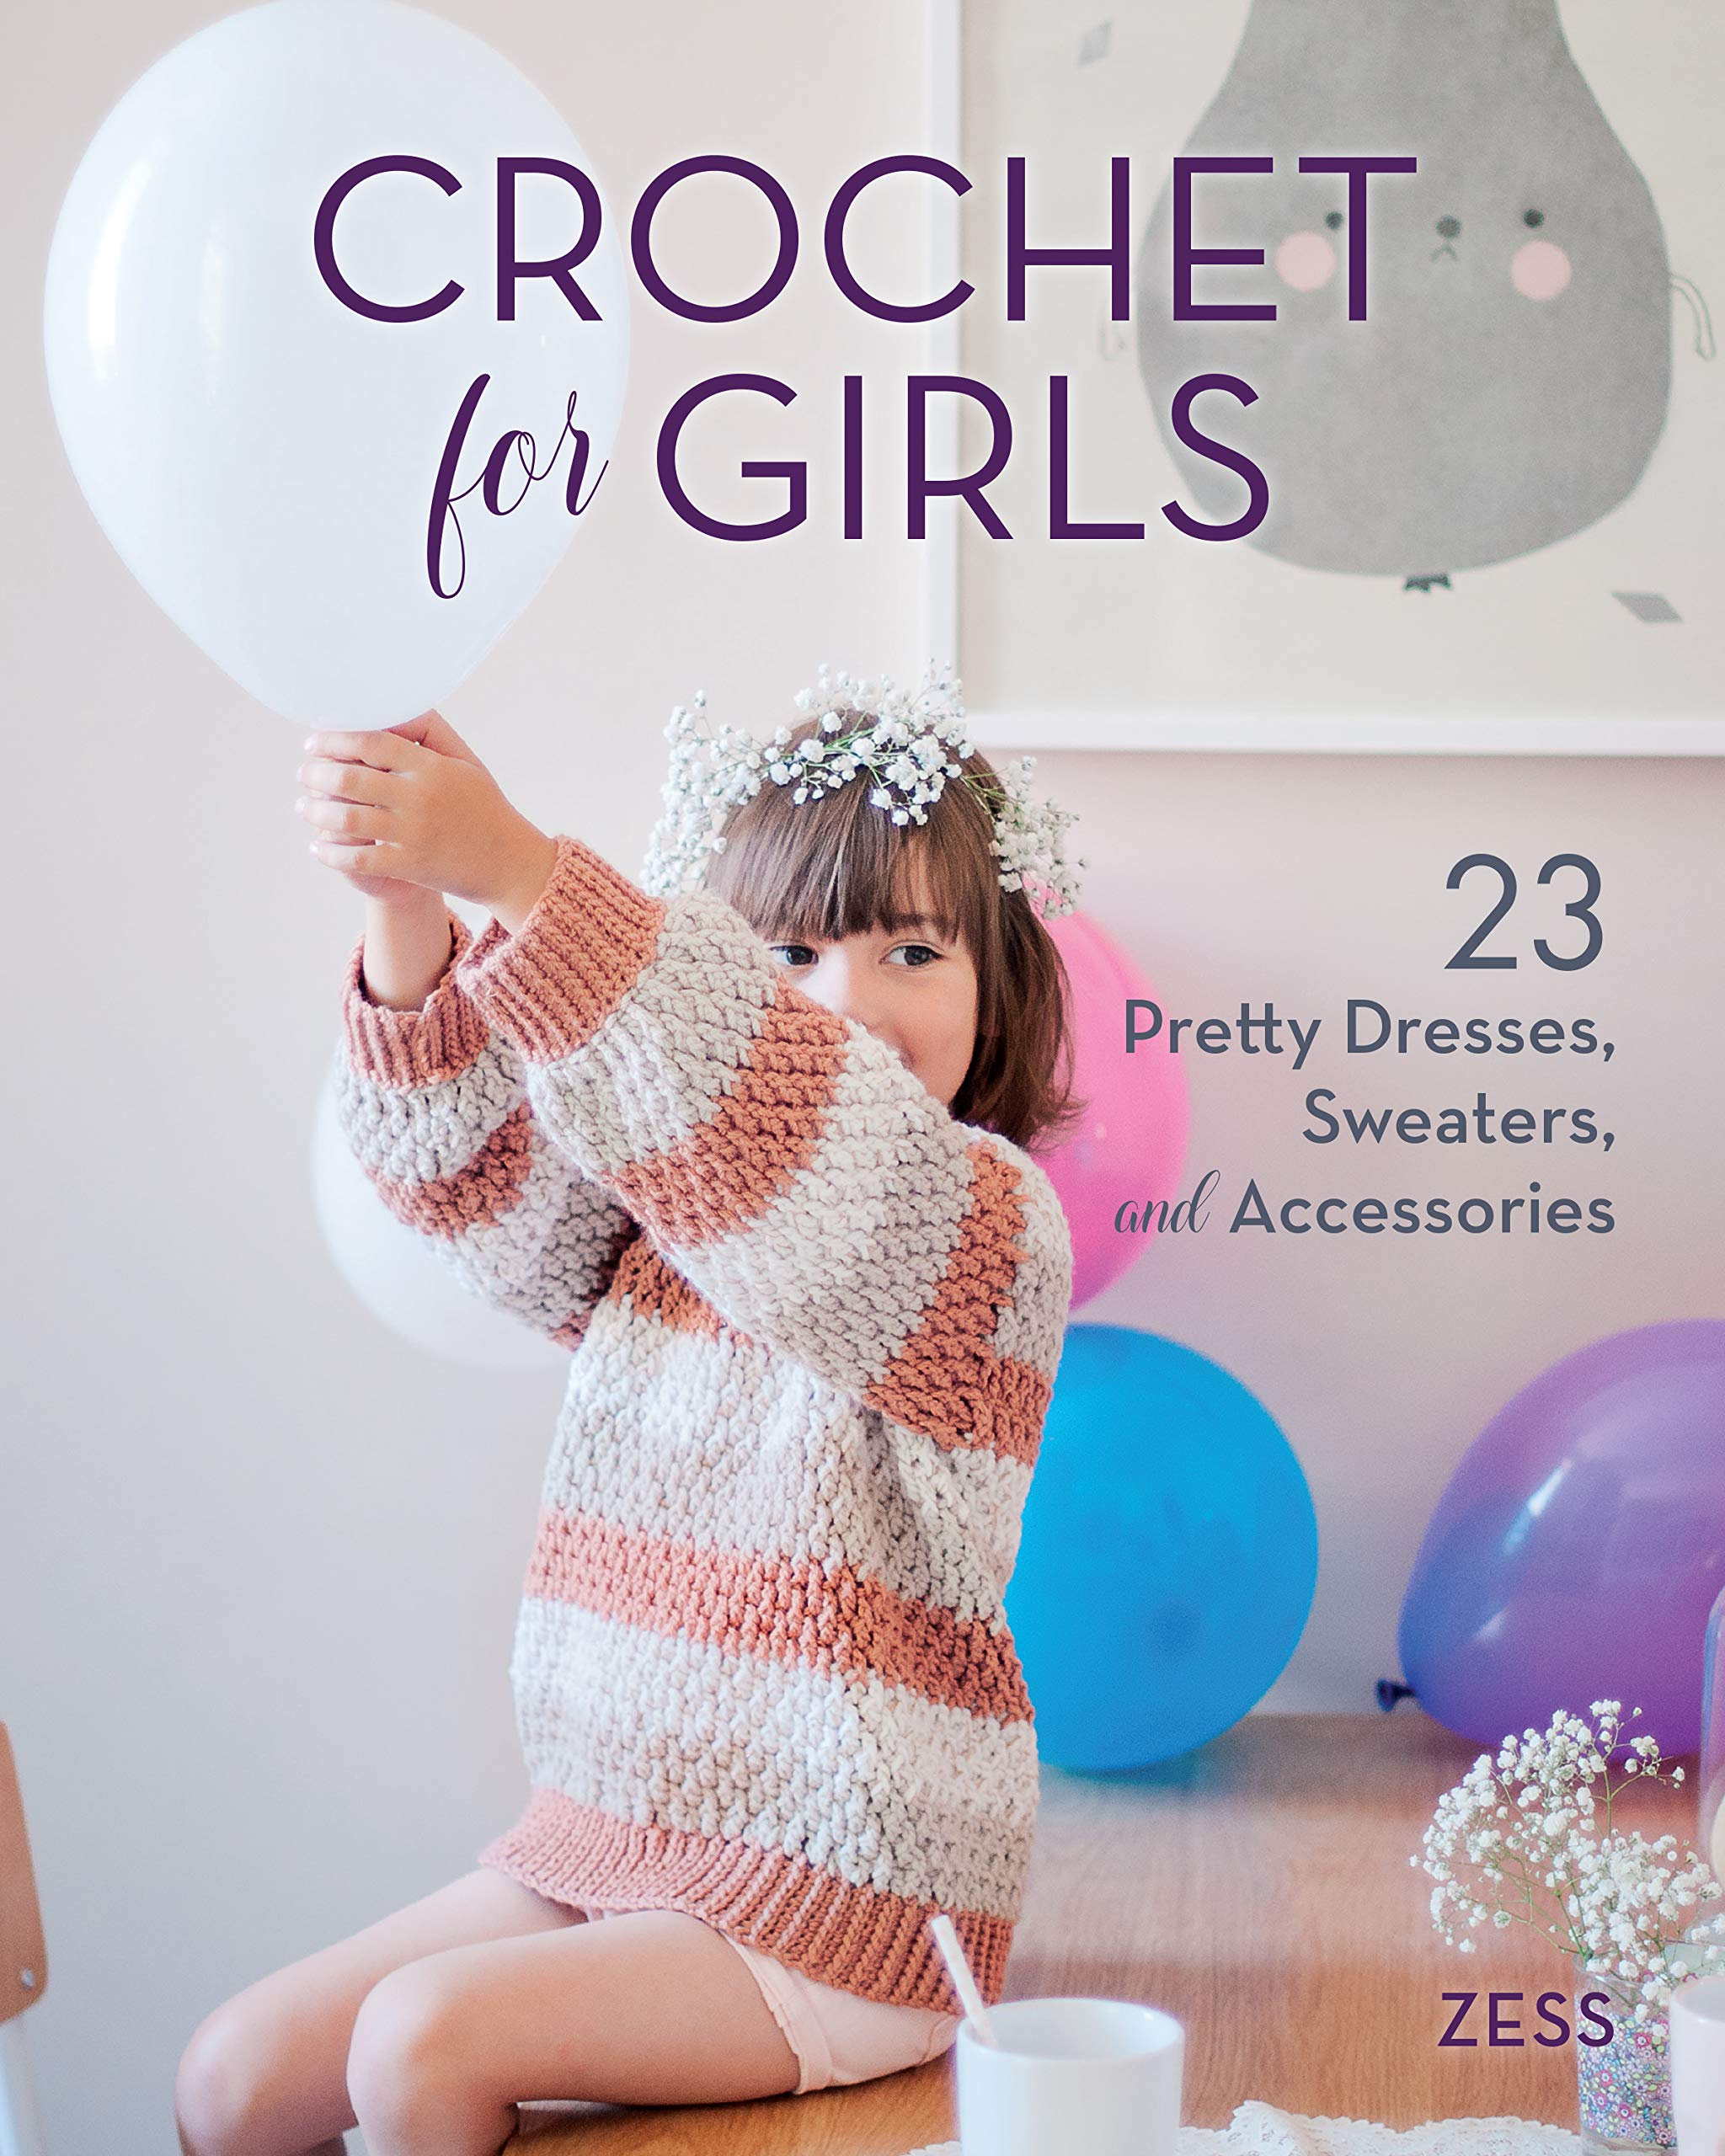 Crochet for Girls 23 Dresses, Sweaters, and Accessories